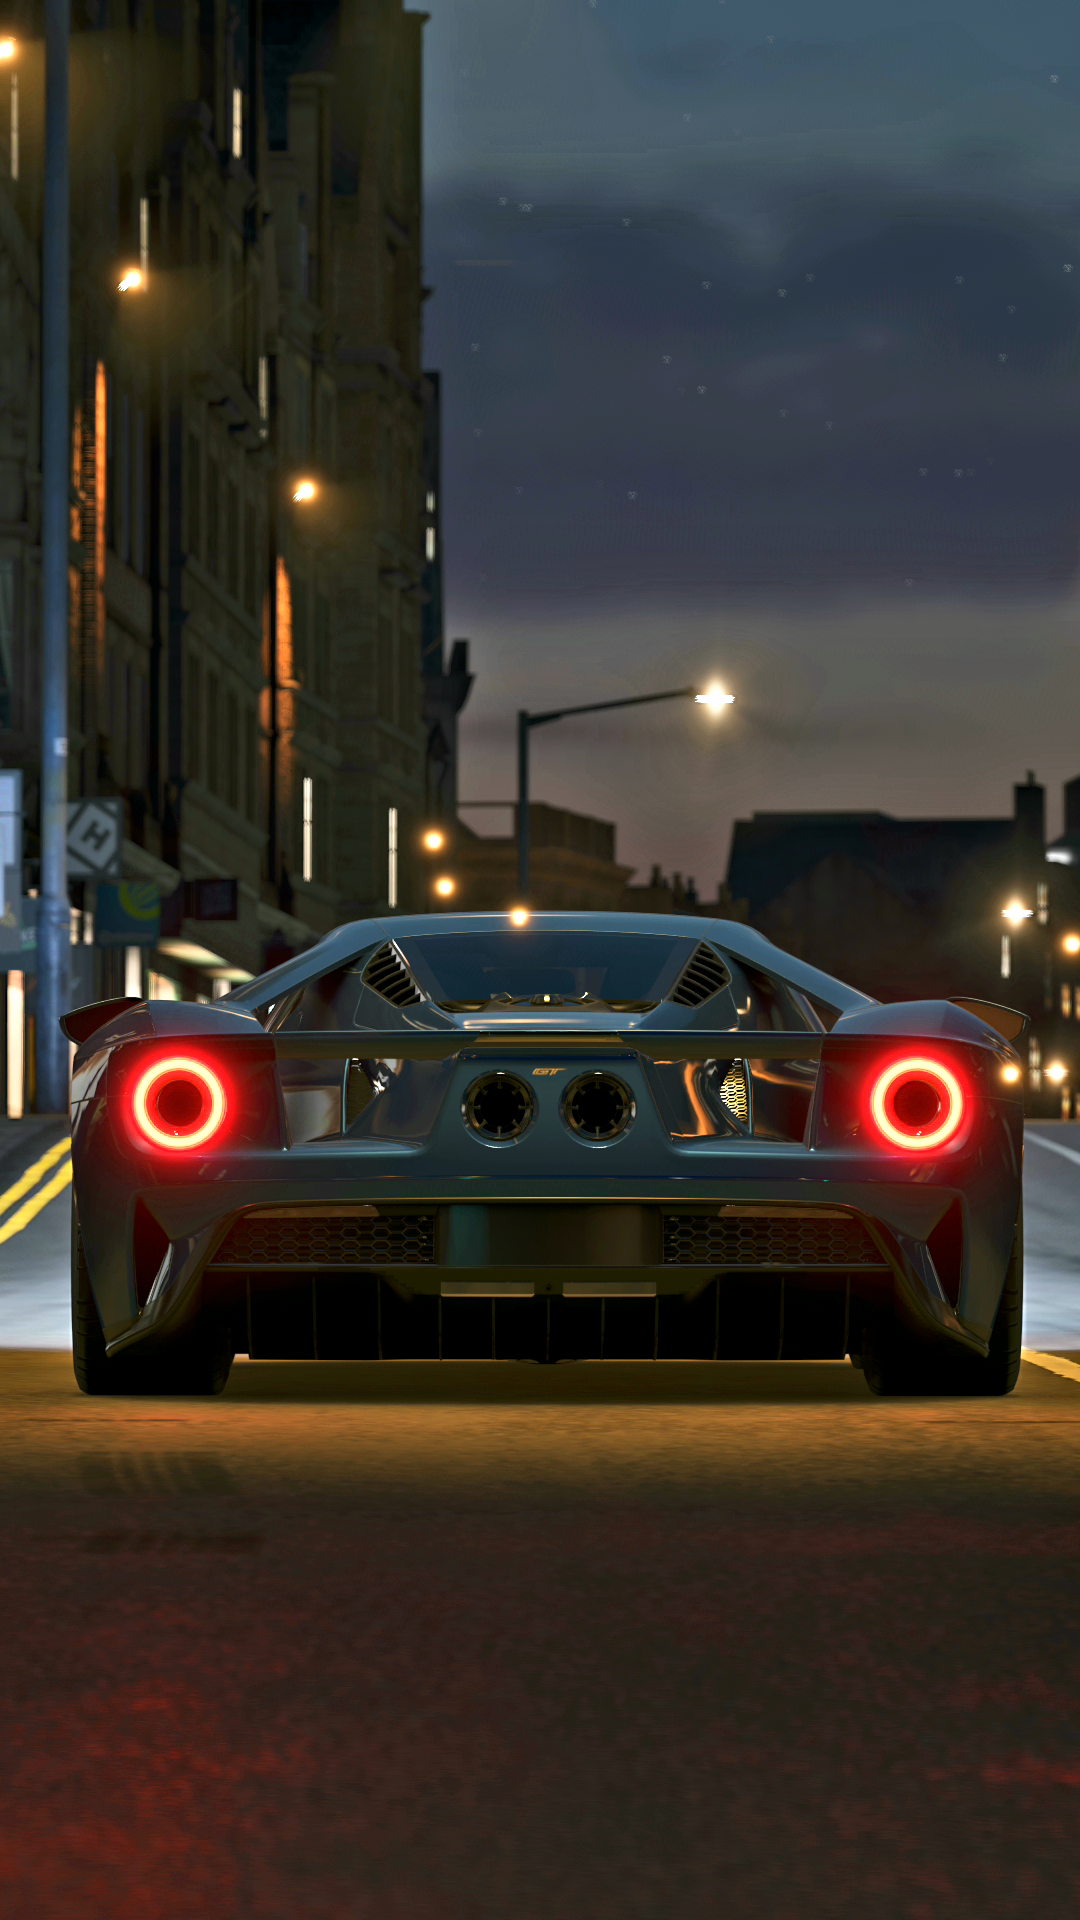 Night Time Ford Gt 1920 X 1080 Active Wallpaper Desktop Background Images Ford Gt